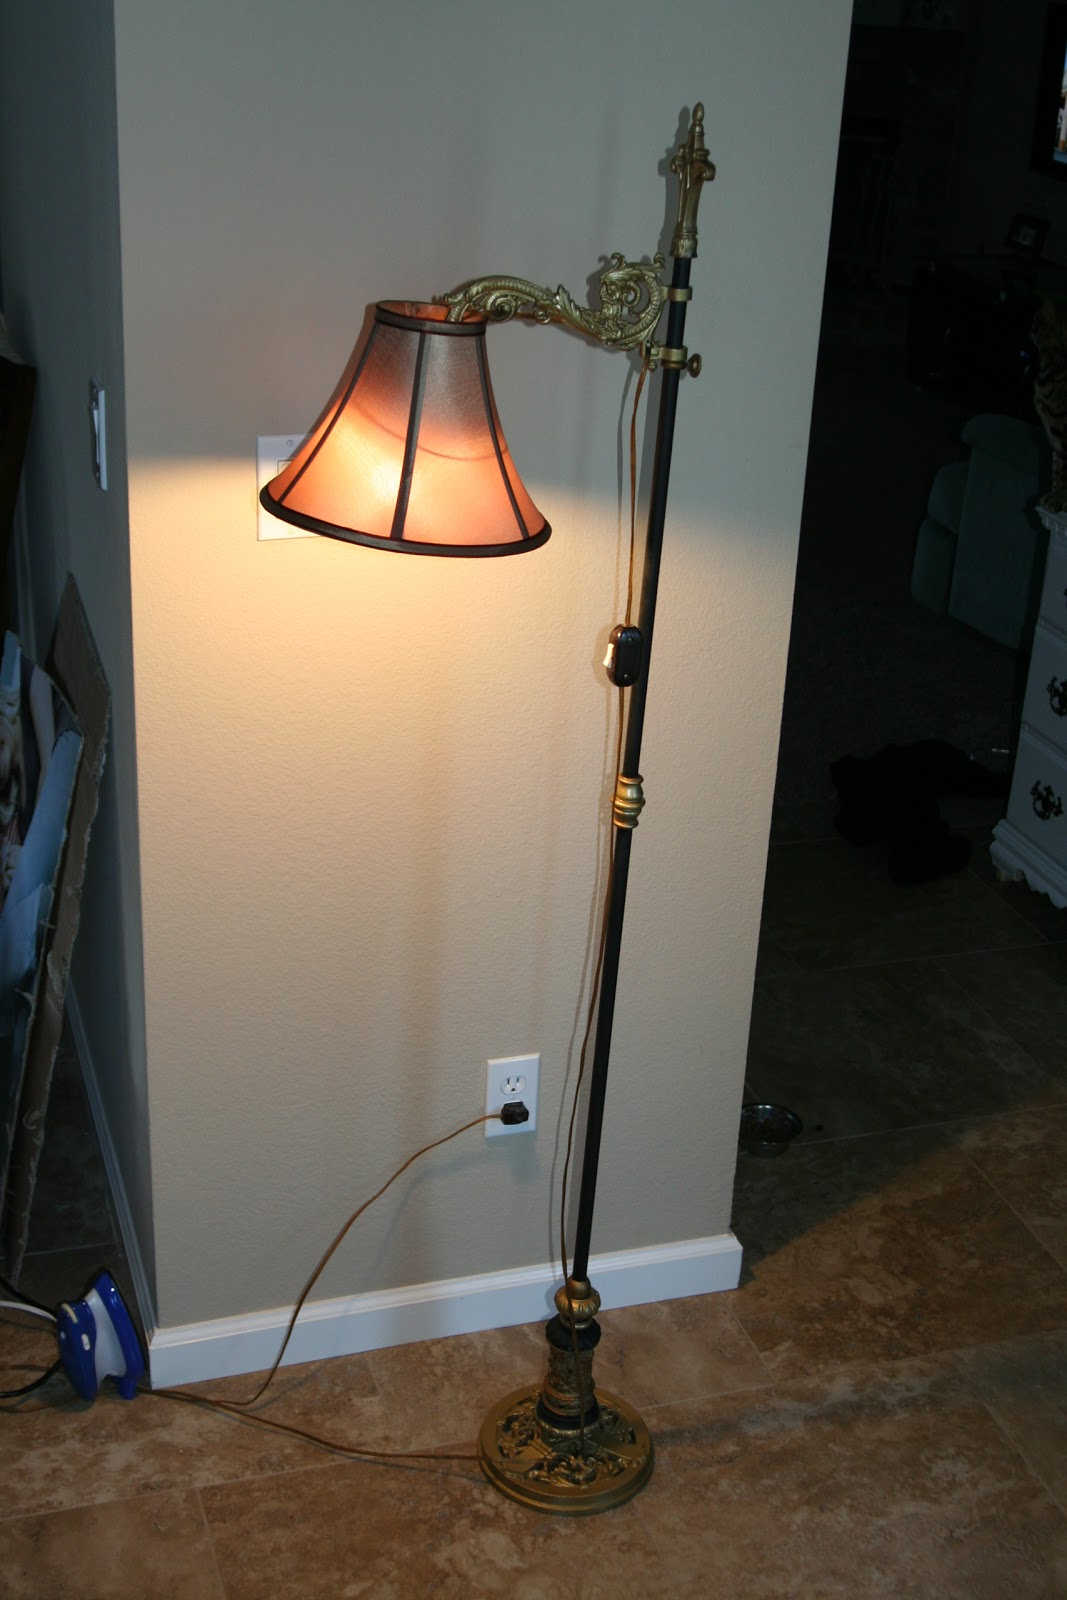 Antique Vintage Floor Lamps, Bridge Garden Picture: Antique Bridge Lamp